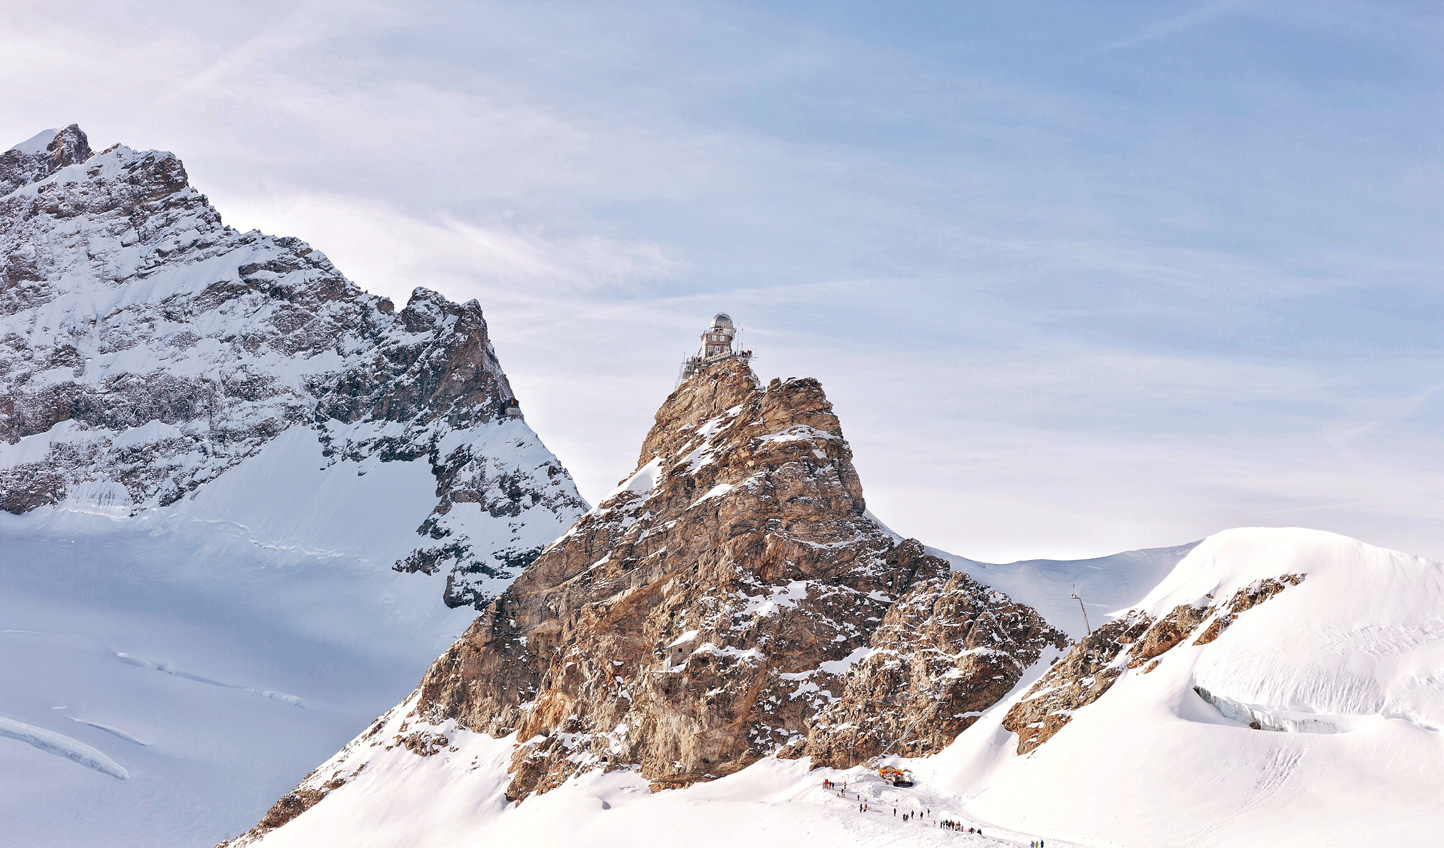 Reaching Jungfraujoch will leave you feeling on top of the world